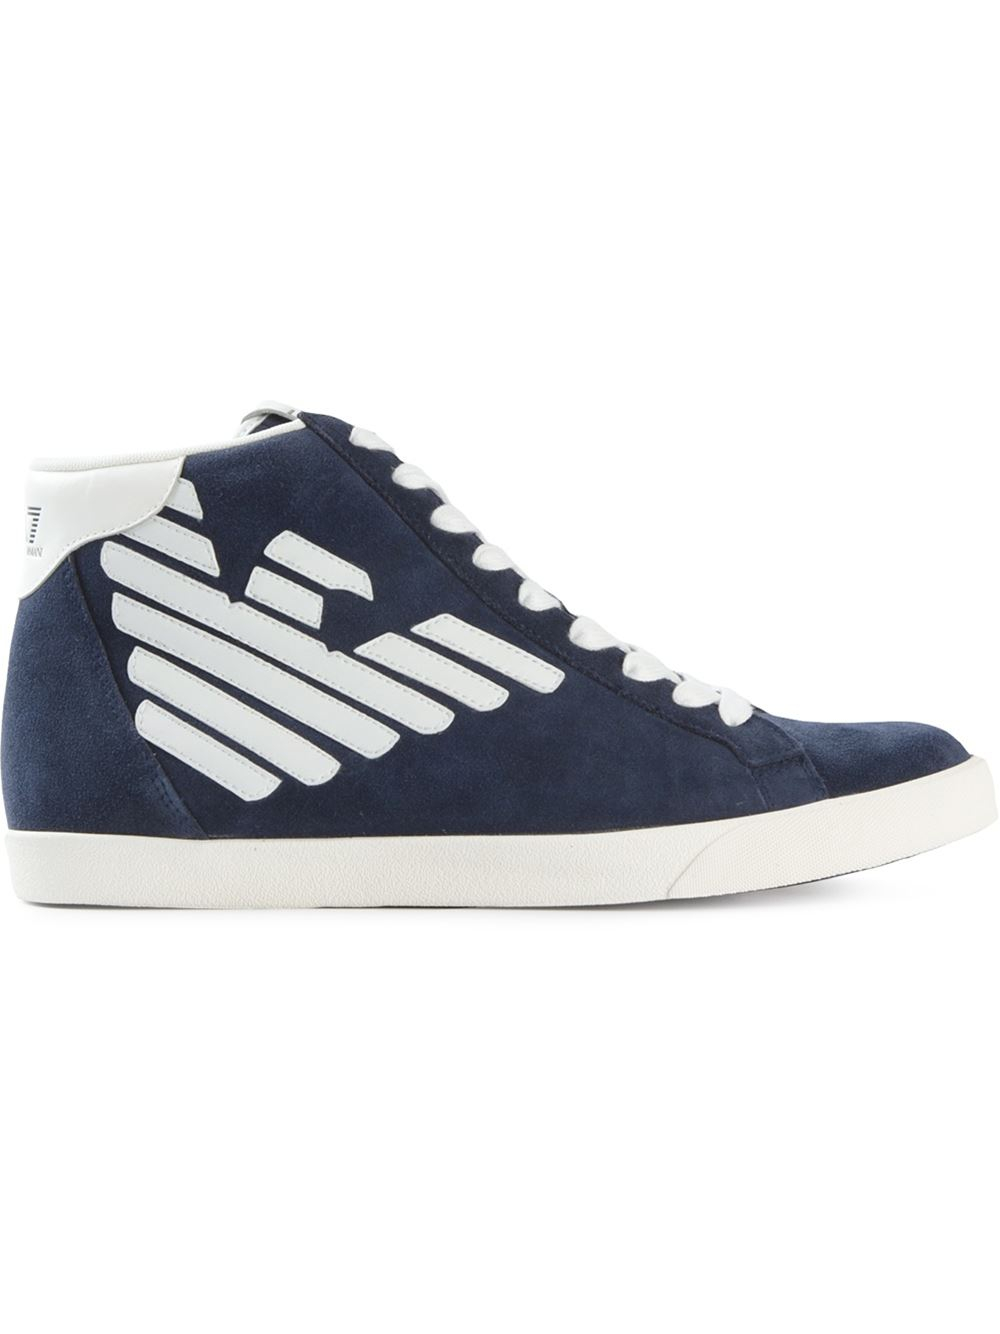 Emporio Armani Logo Patch High Top Sneakers In Blue For